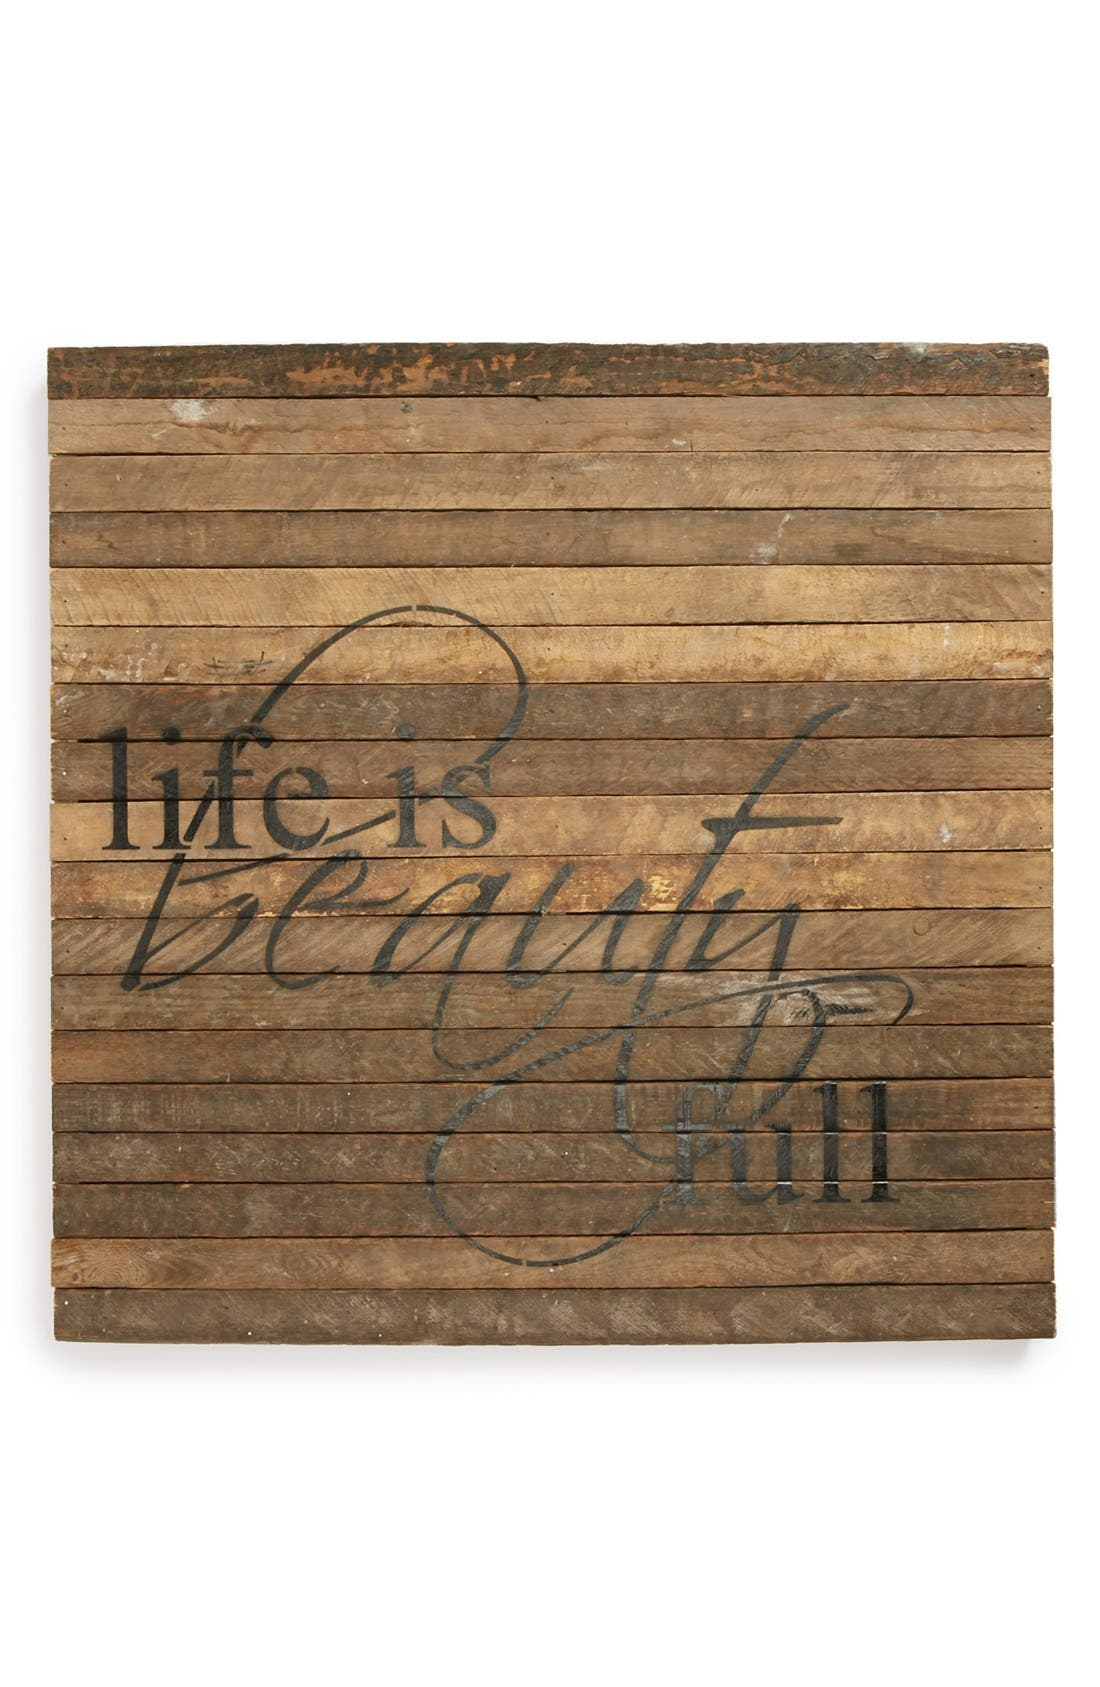 Alternate Image 1 Selected - Second Nature by Hand 'Life Is Beauty Full' Repurposed Wood Wall Art